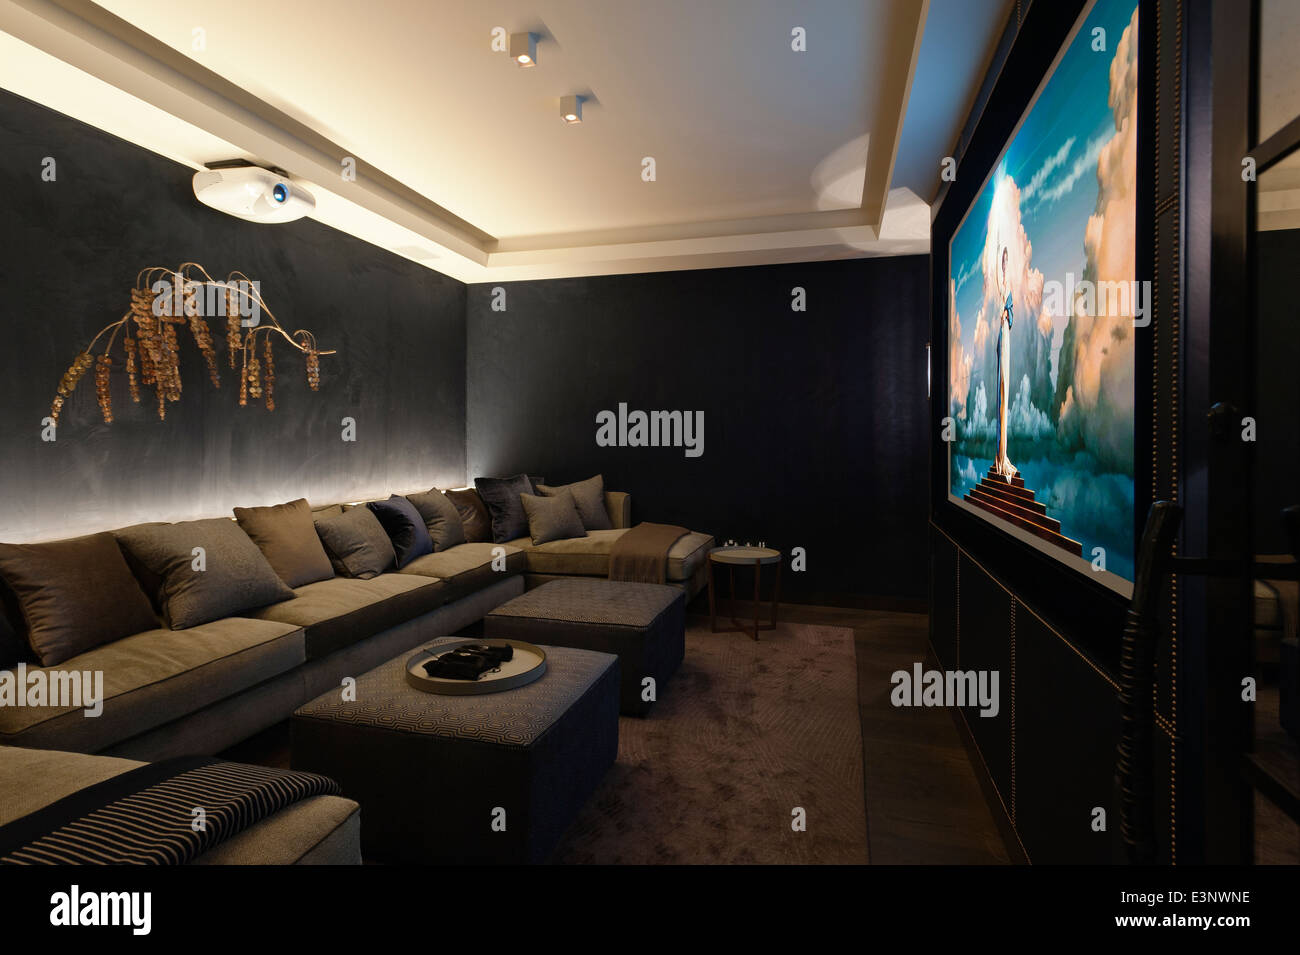 Chic home cinema in dark tones and extended sofa seating - Stock Image